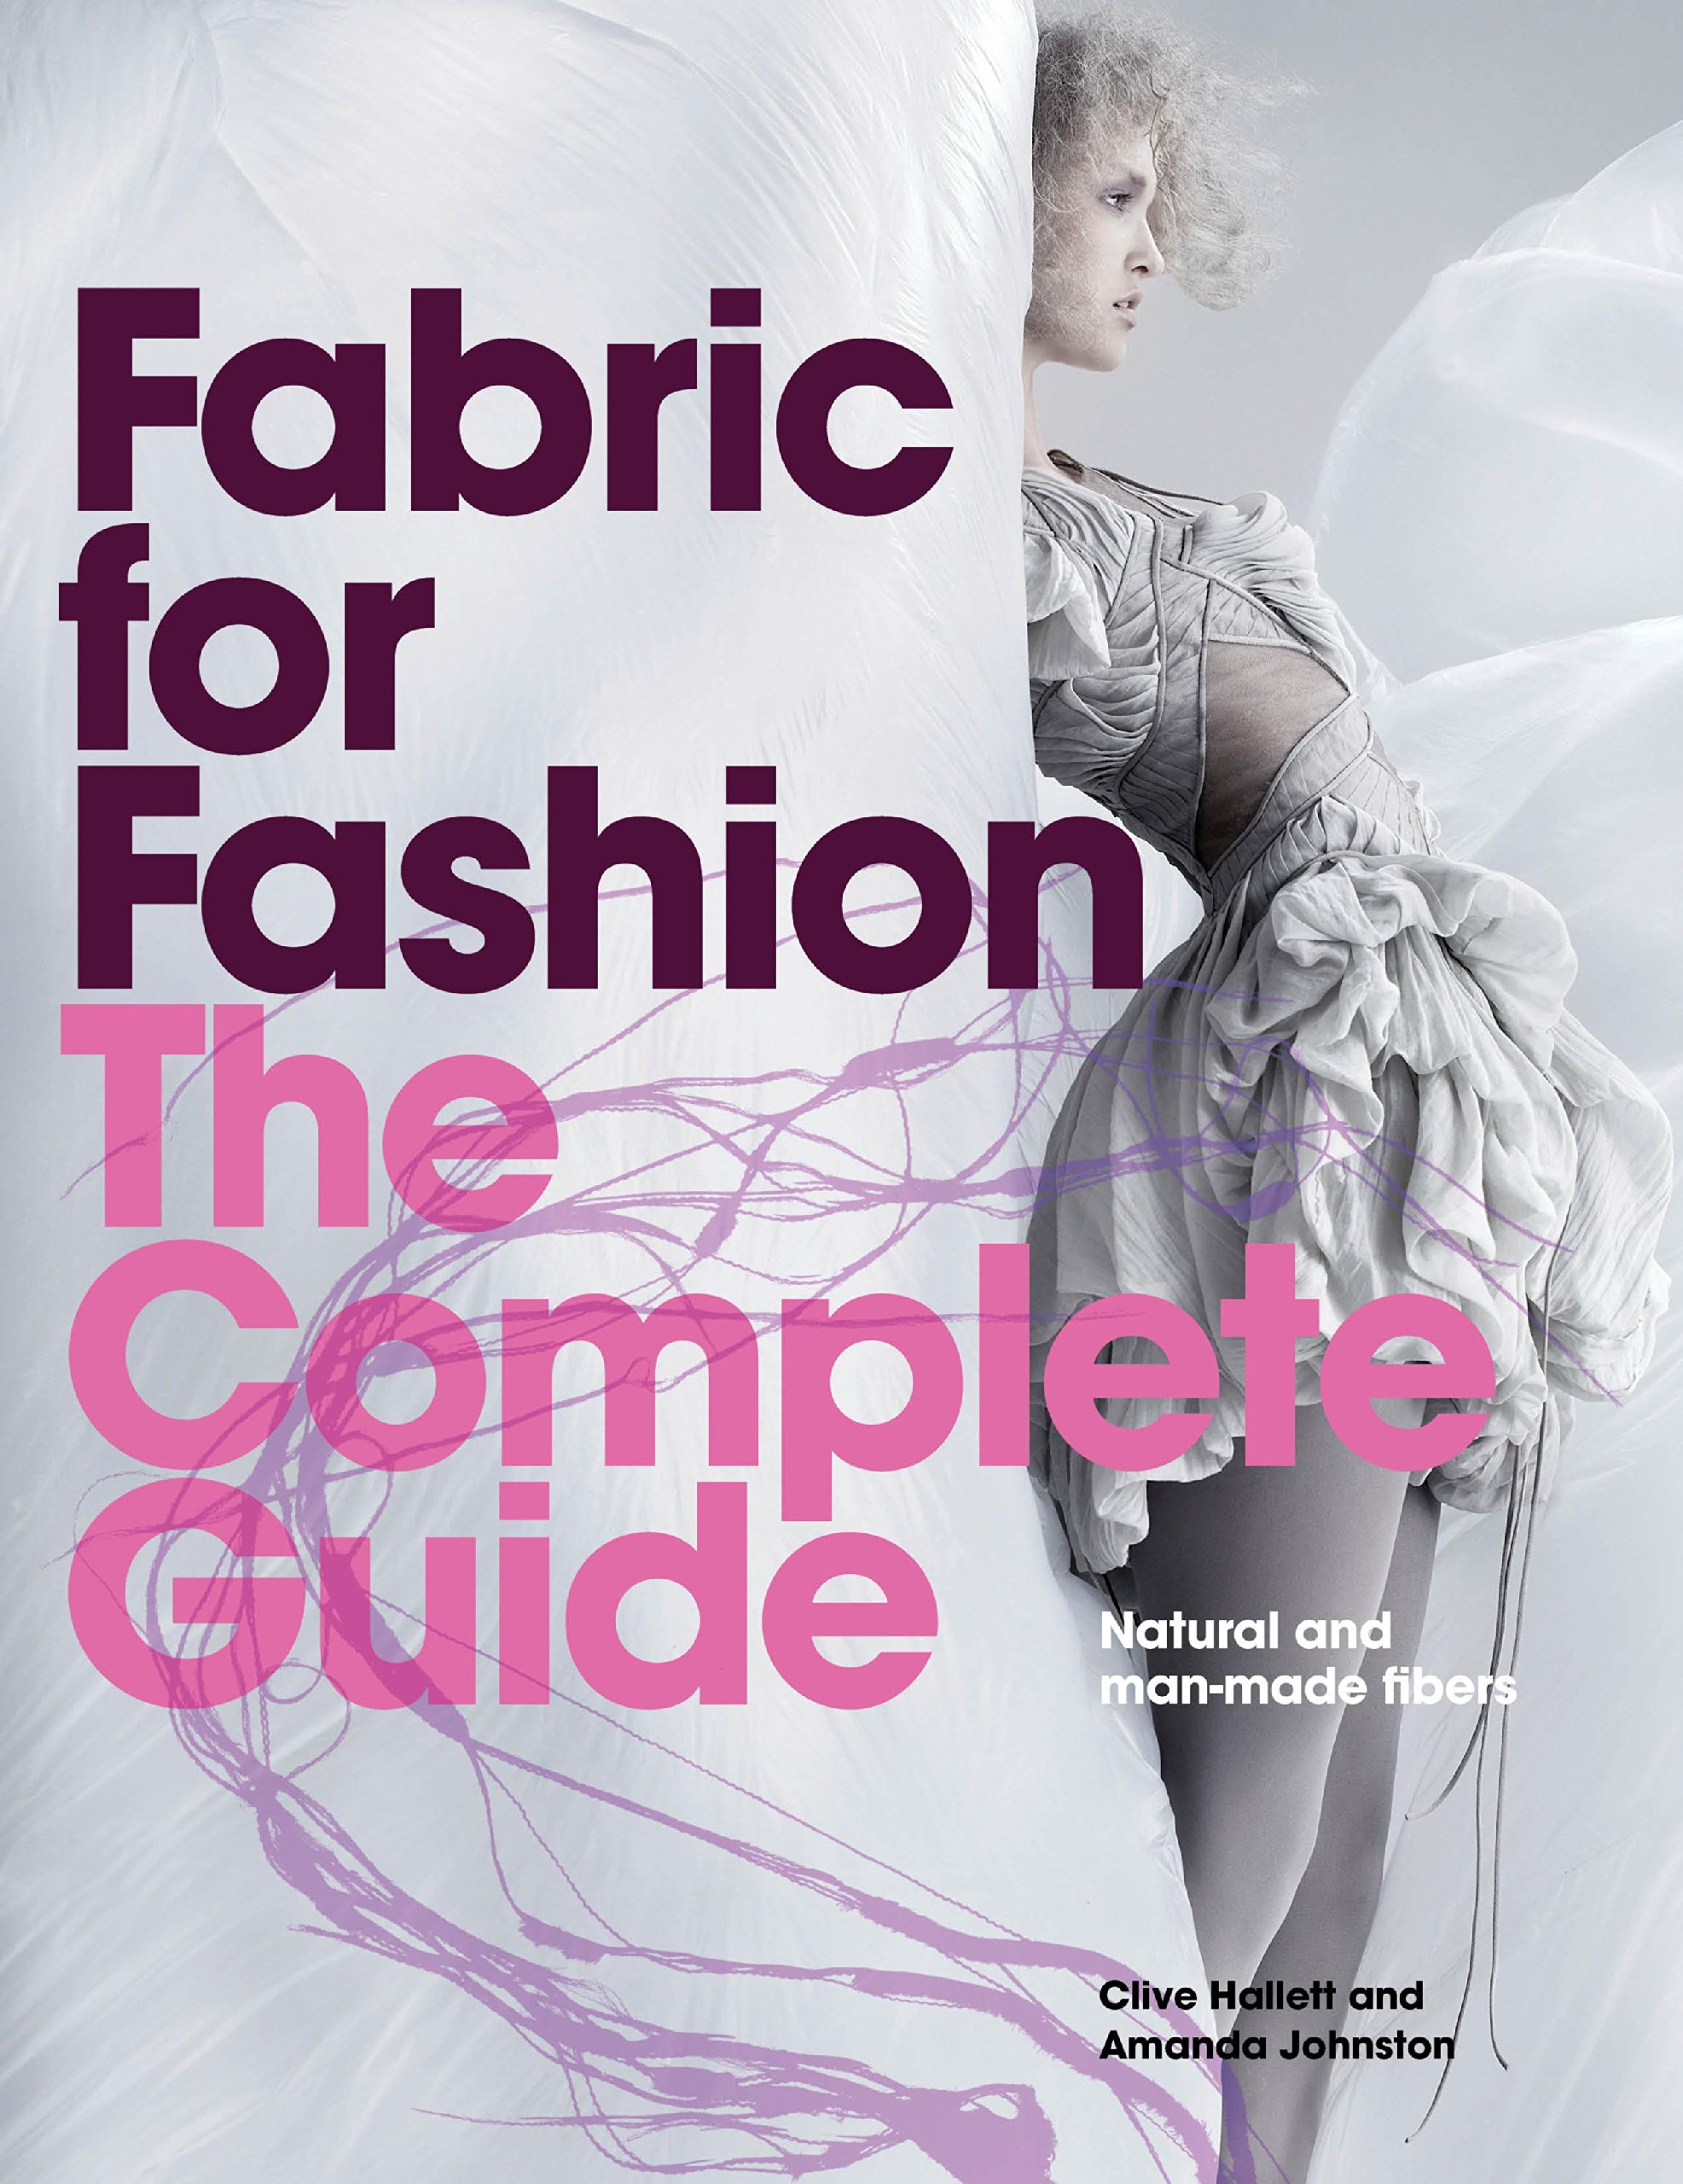 The Fashion Design Reference Specification Book Buy Online In Albania Jay Calderin Products In Albania See Prices Reviews And Free Delivery Over 7 500 Lek Desertcart